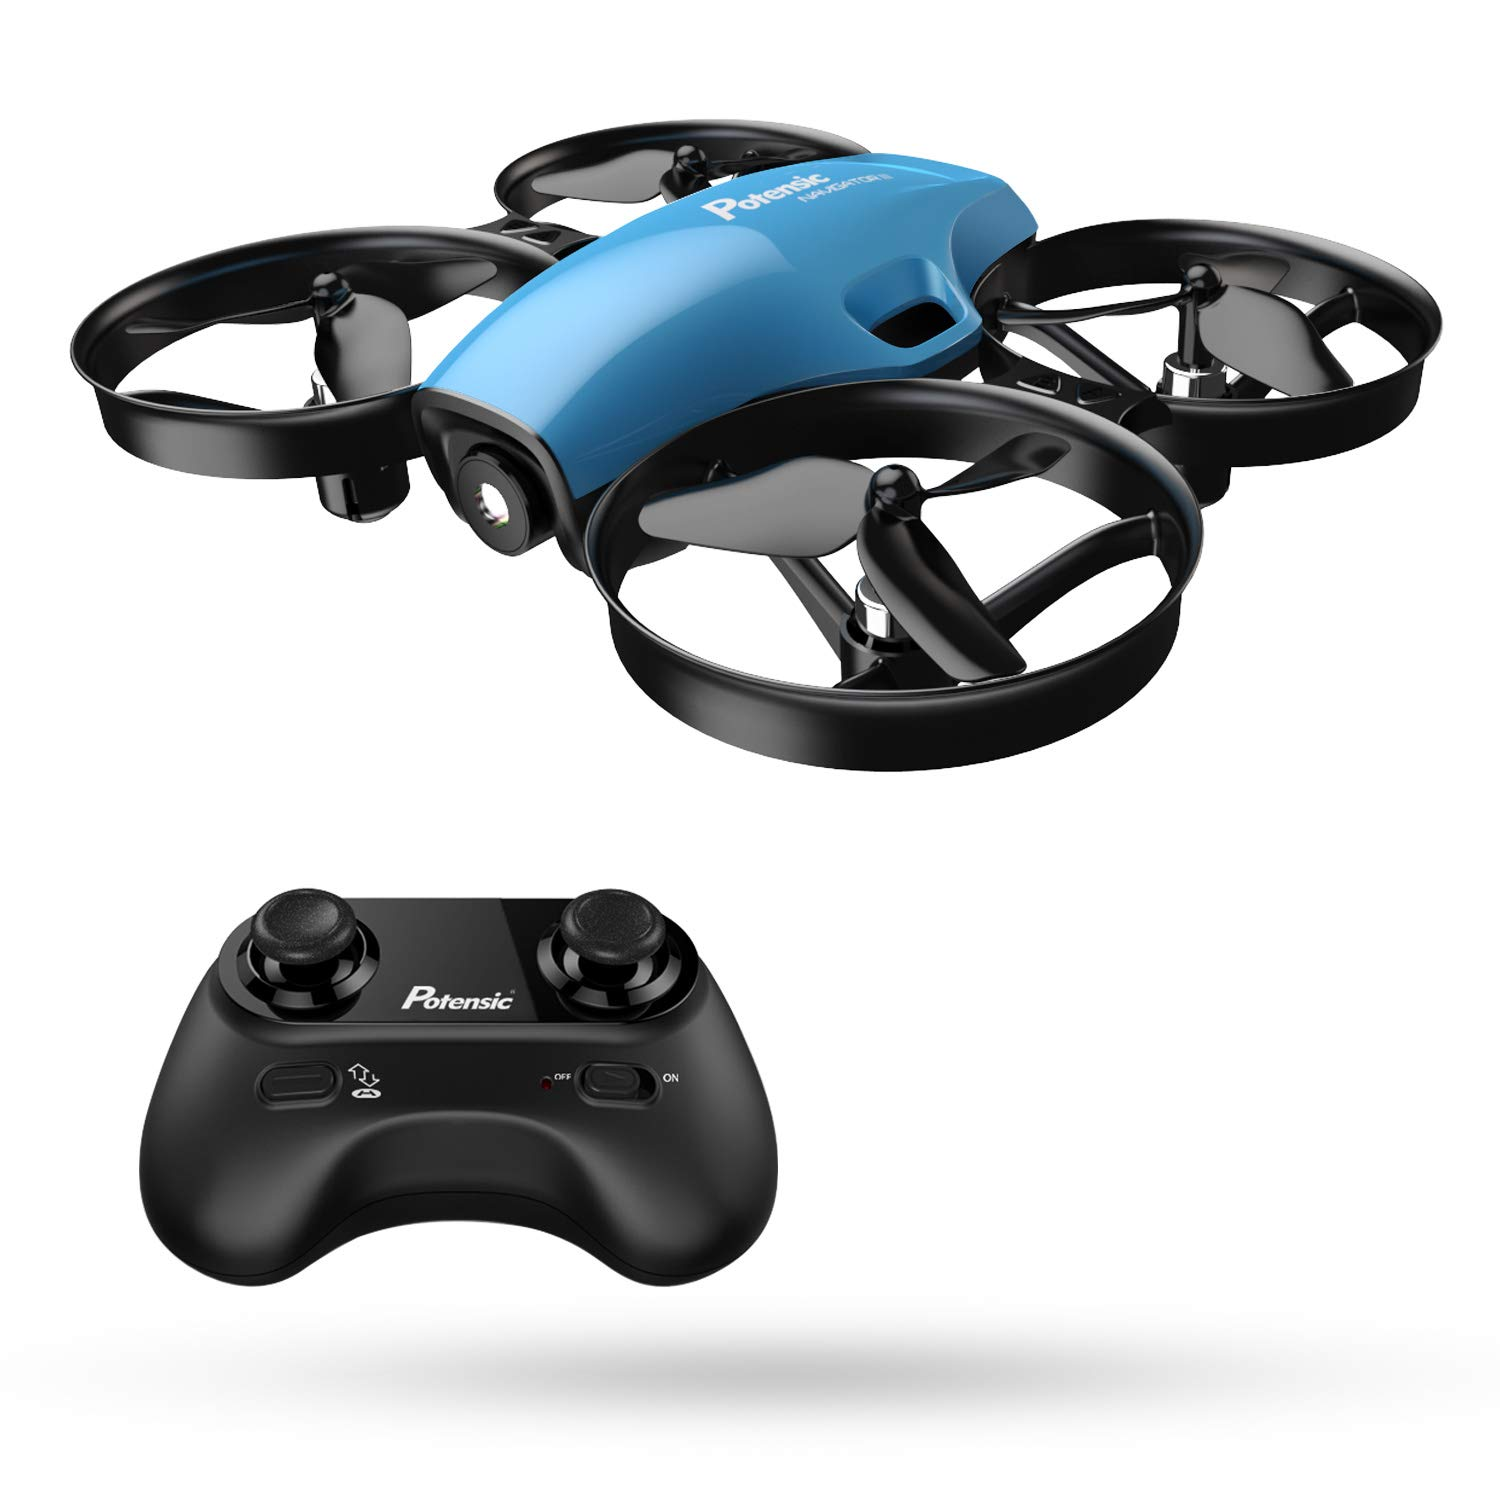 Mini Drone, RC Quadcopter, Potensic A30 One Key Take-Off/Land,Emergency Stopped, Altitude Hold,Auto Hovering,Drone for Kids (Blue) by Potensic (Image #1)